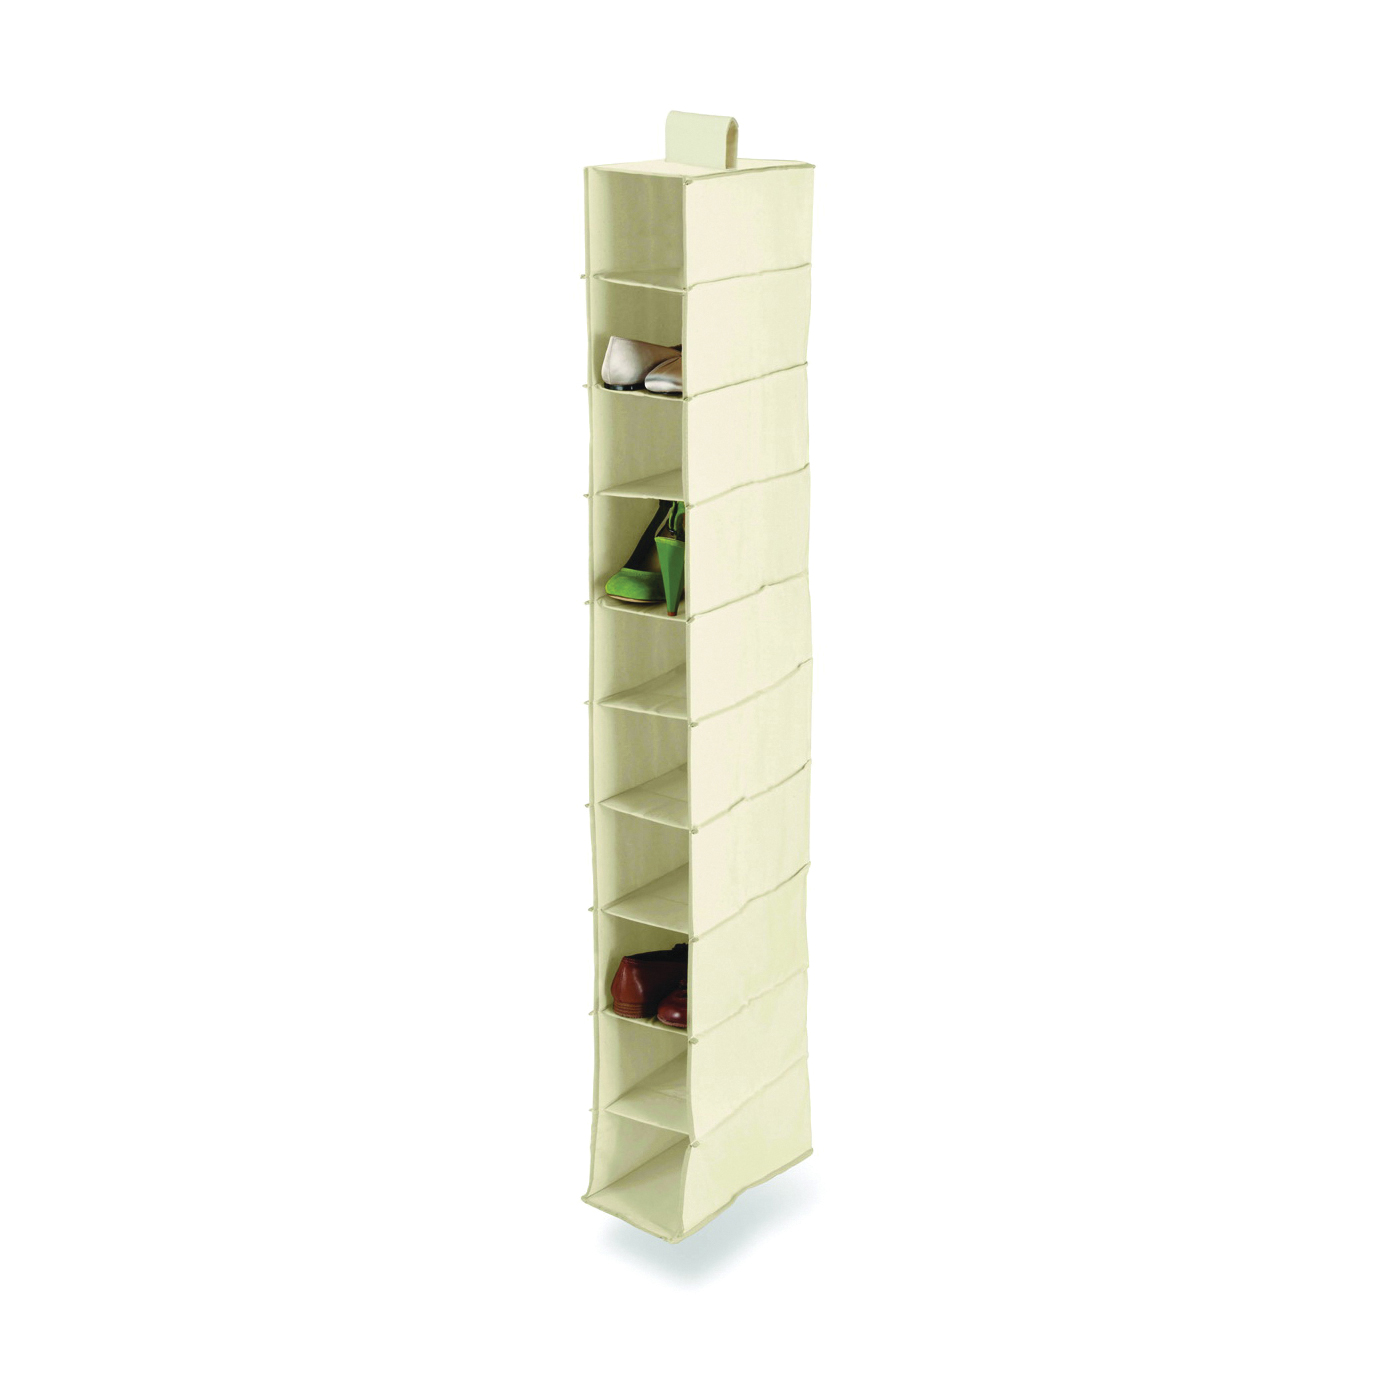 Picture of Honey-Can-Do SFT-01254 Closet Organizer, 12 in W, 54 in H, 10-Shelf, Canvas, Beige